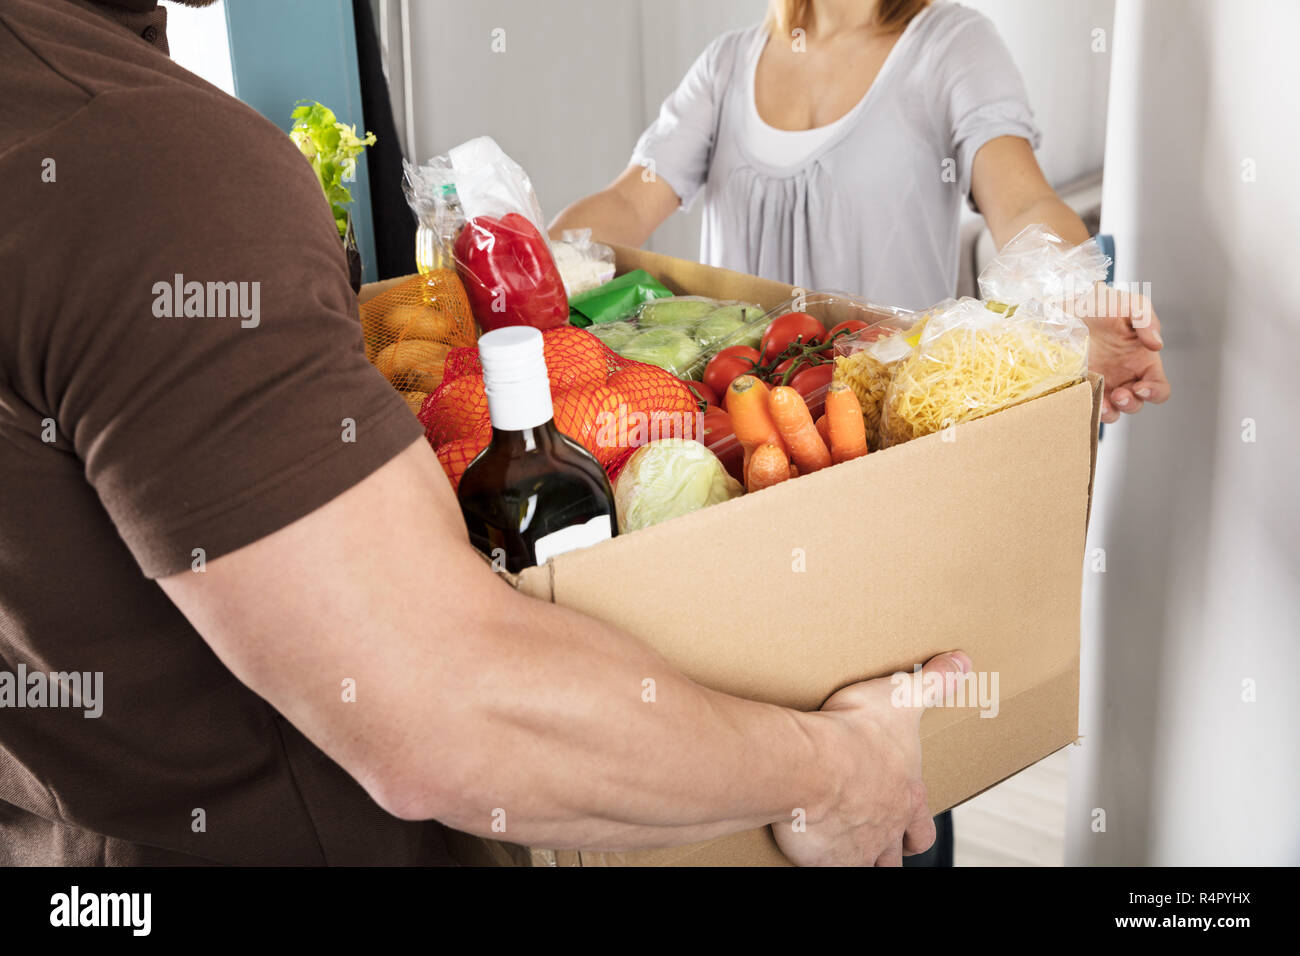 Delivery Man Giving Grocery Box To Woman - Stock Image